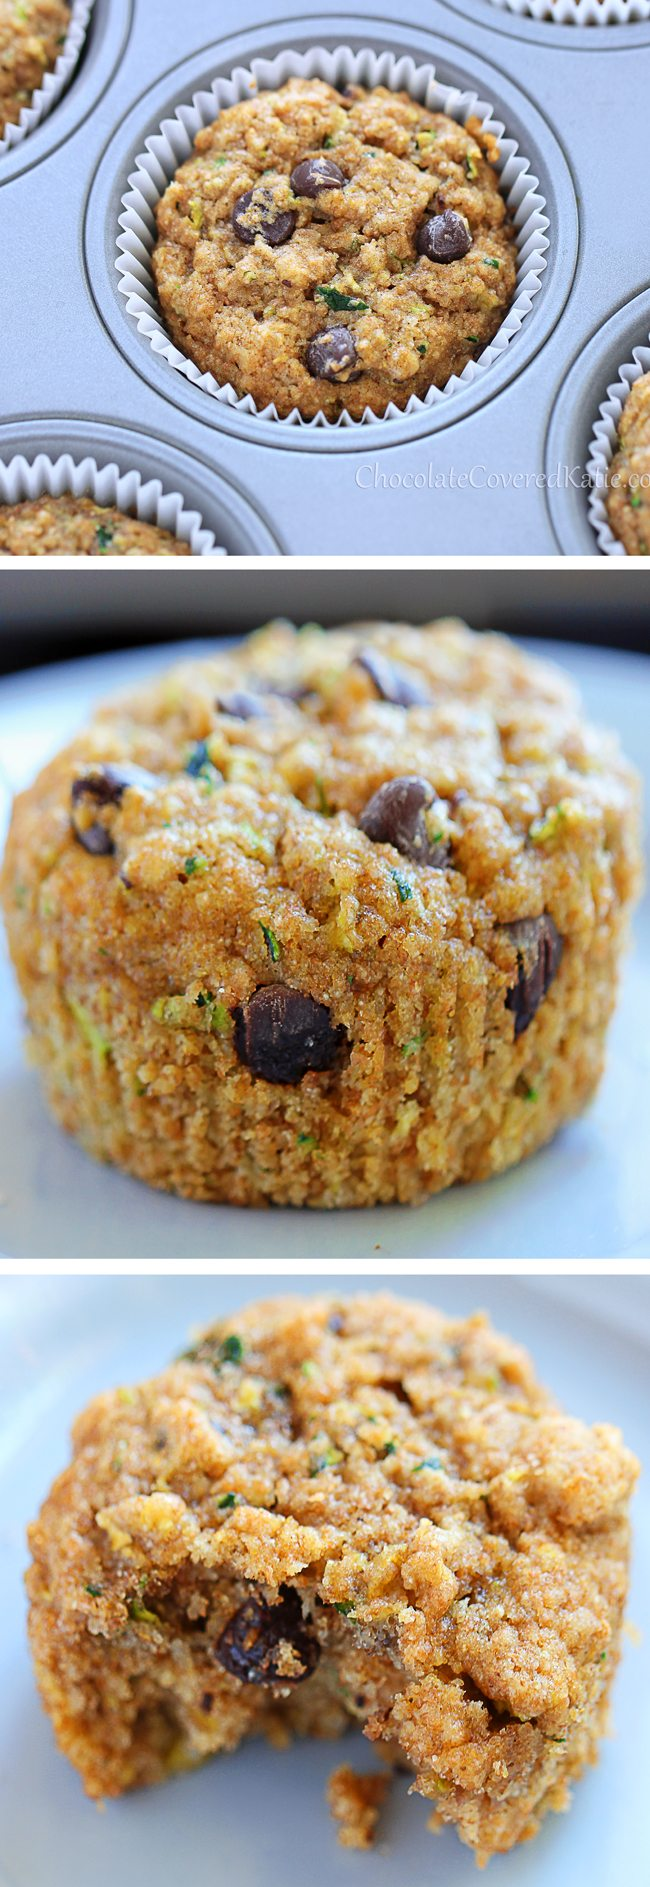 Zucchini Muffins – Ingredients: 1 cup grated zucchini, 1/2 cup chocolate chips, 1 tsp baking soda, 1 tsp vanilla extract, 3/4 cup… Full recipe: https://chocolatecoveredkatie.com/2013/04/25/chocolate-chip-zucchini-bread-muffins/ @choccoveredkt